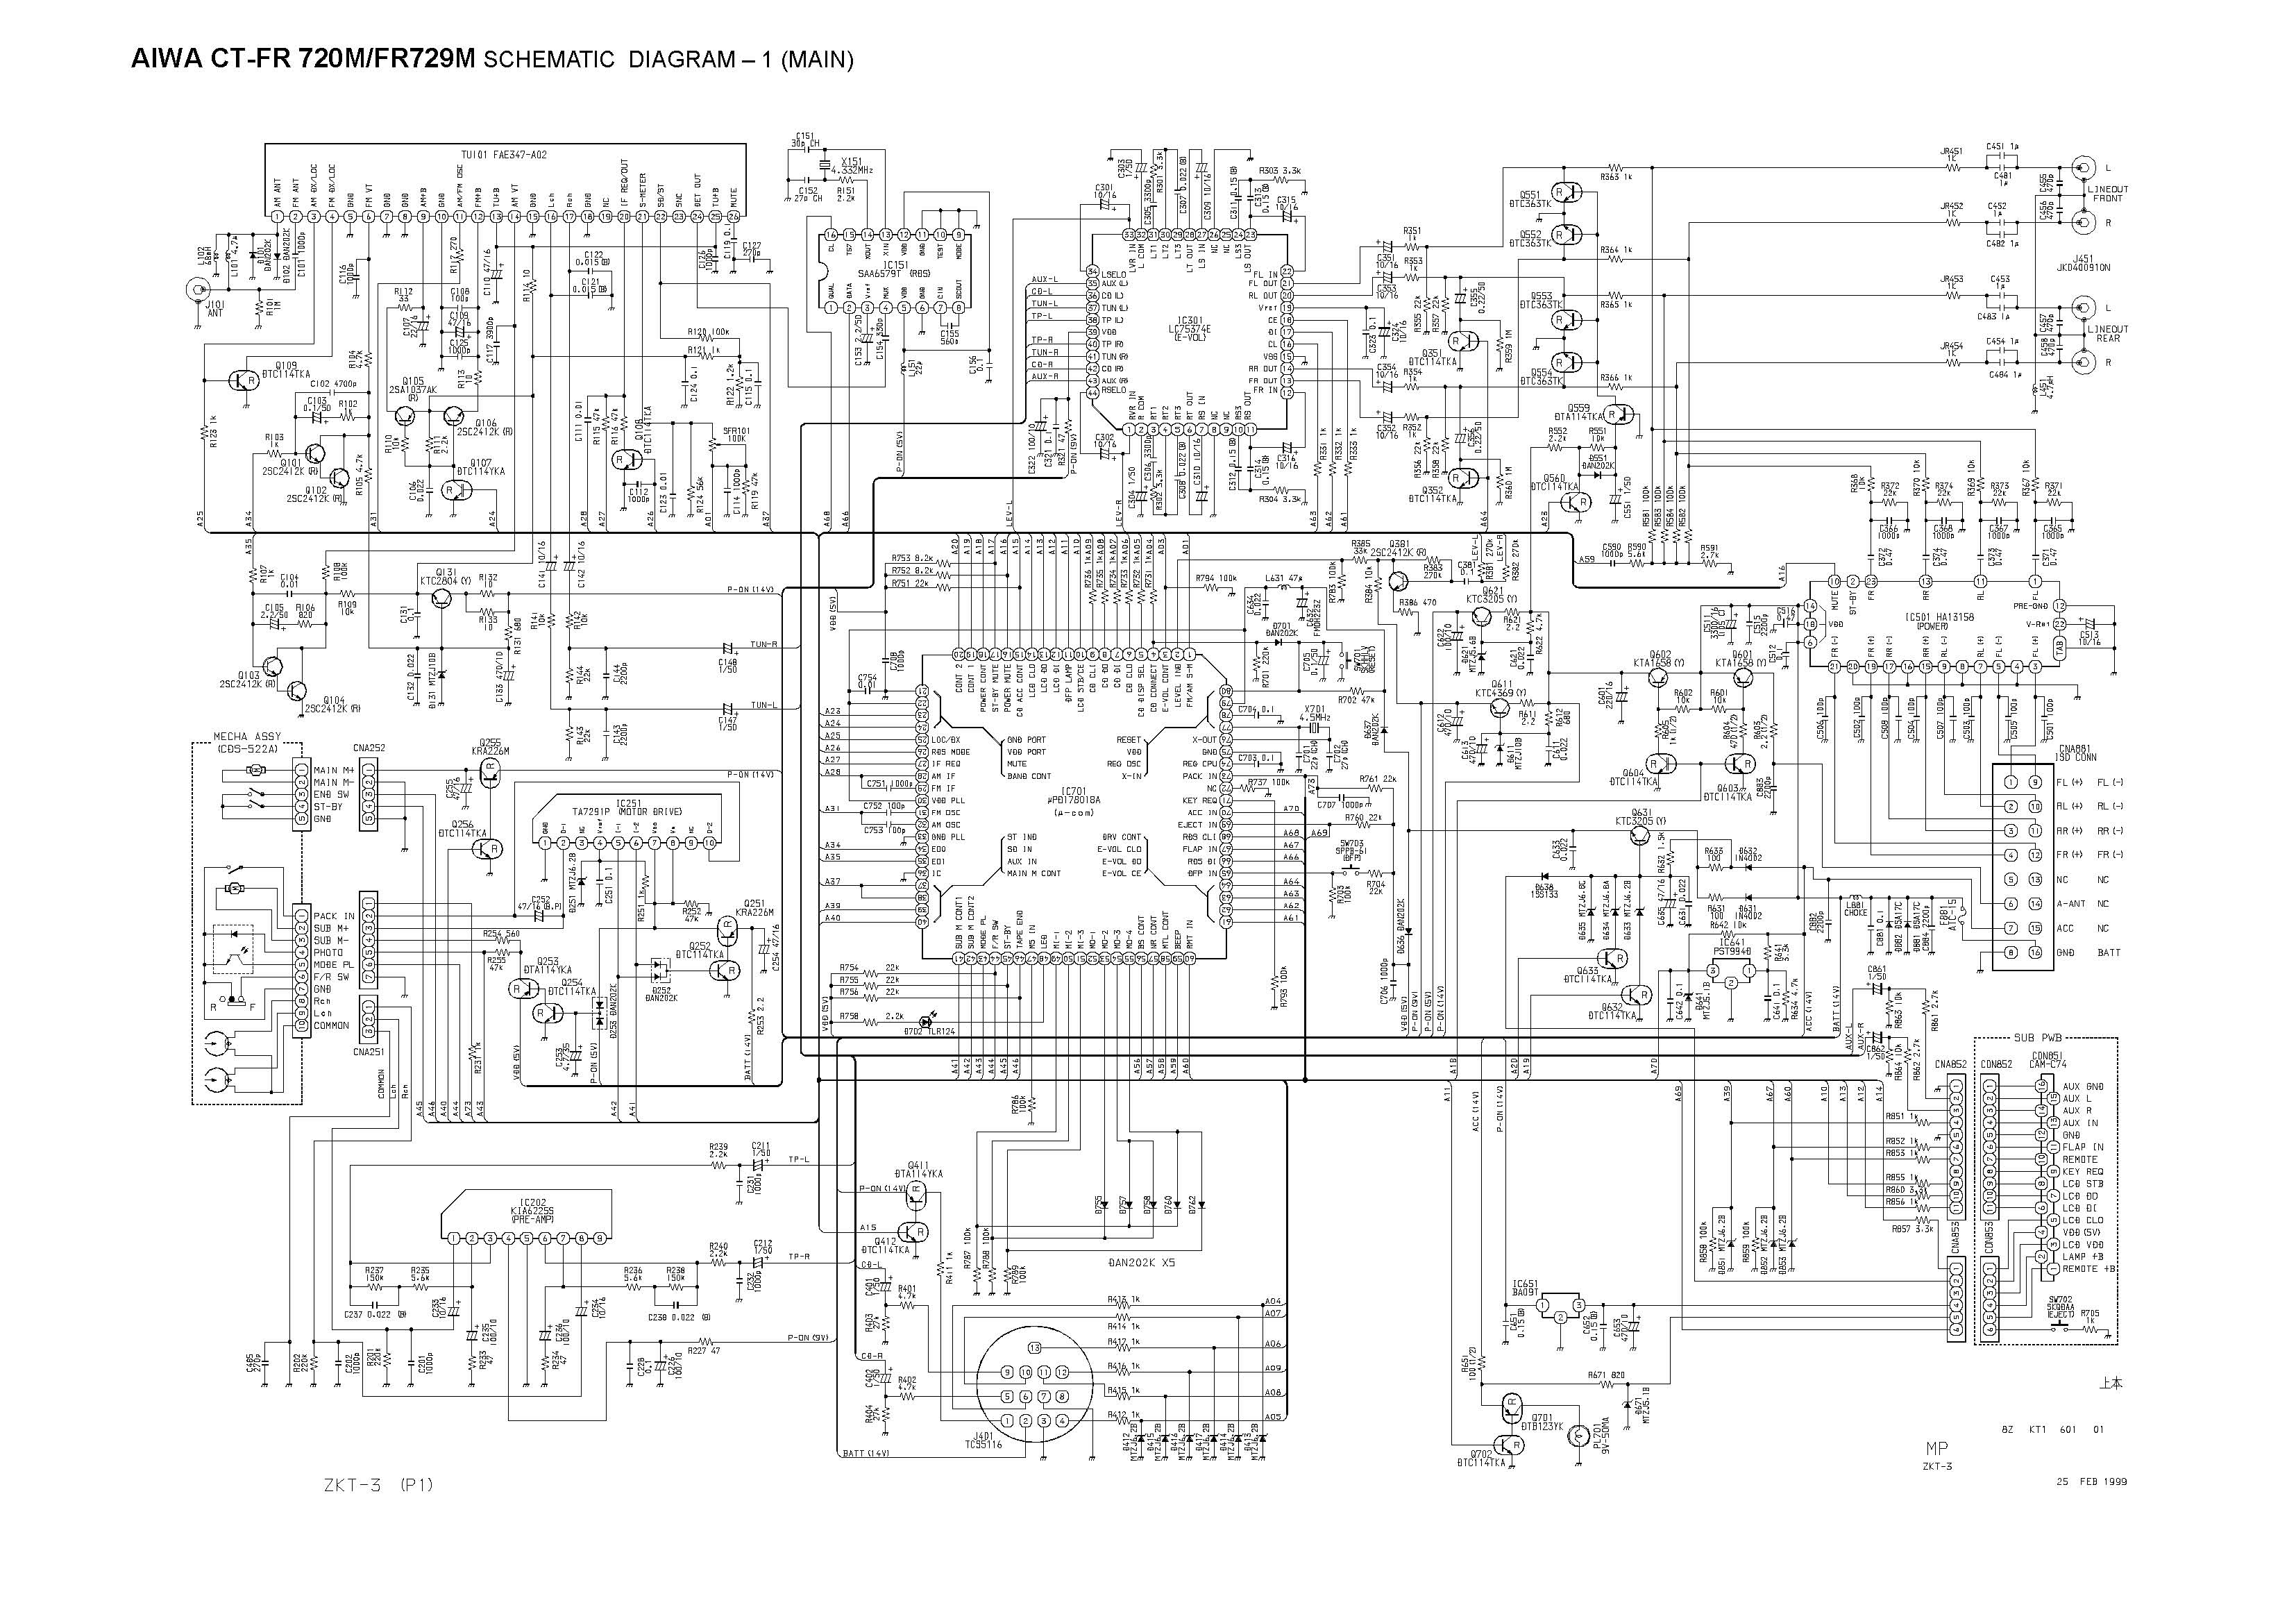 Aiwa CT-FR 720M Schematic Diagram (Main / Front) in PDF